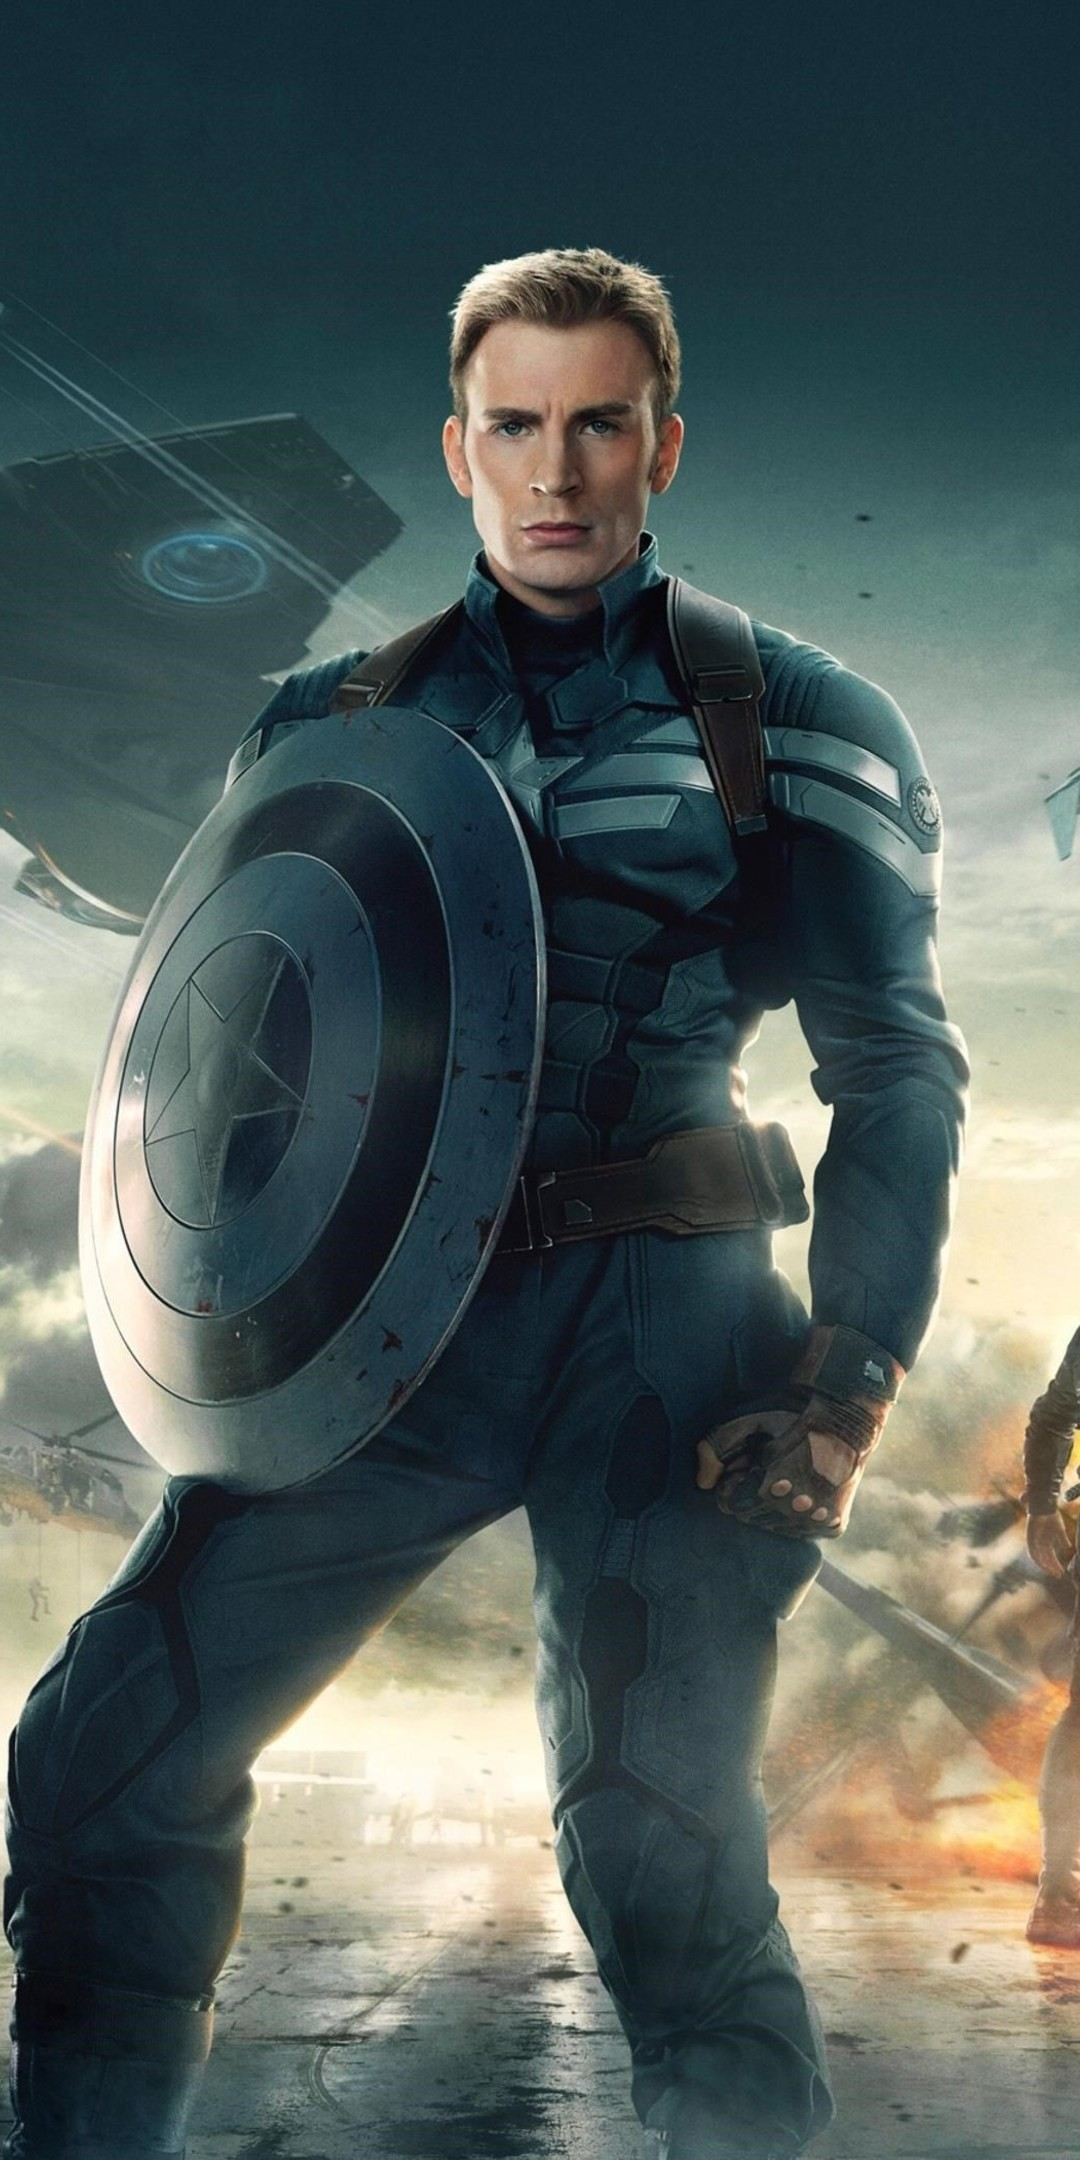 1080x2160 captain-america-the-winter-soldier.jpg